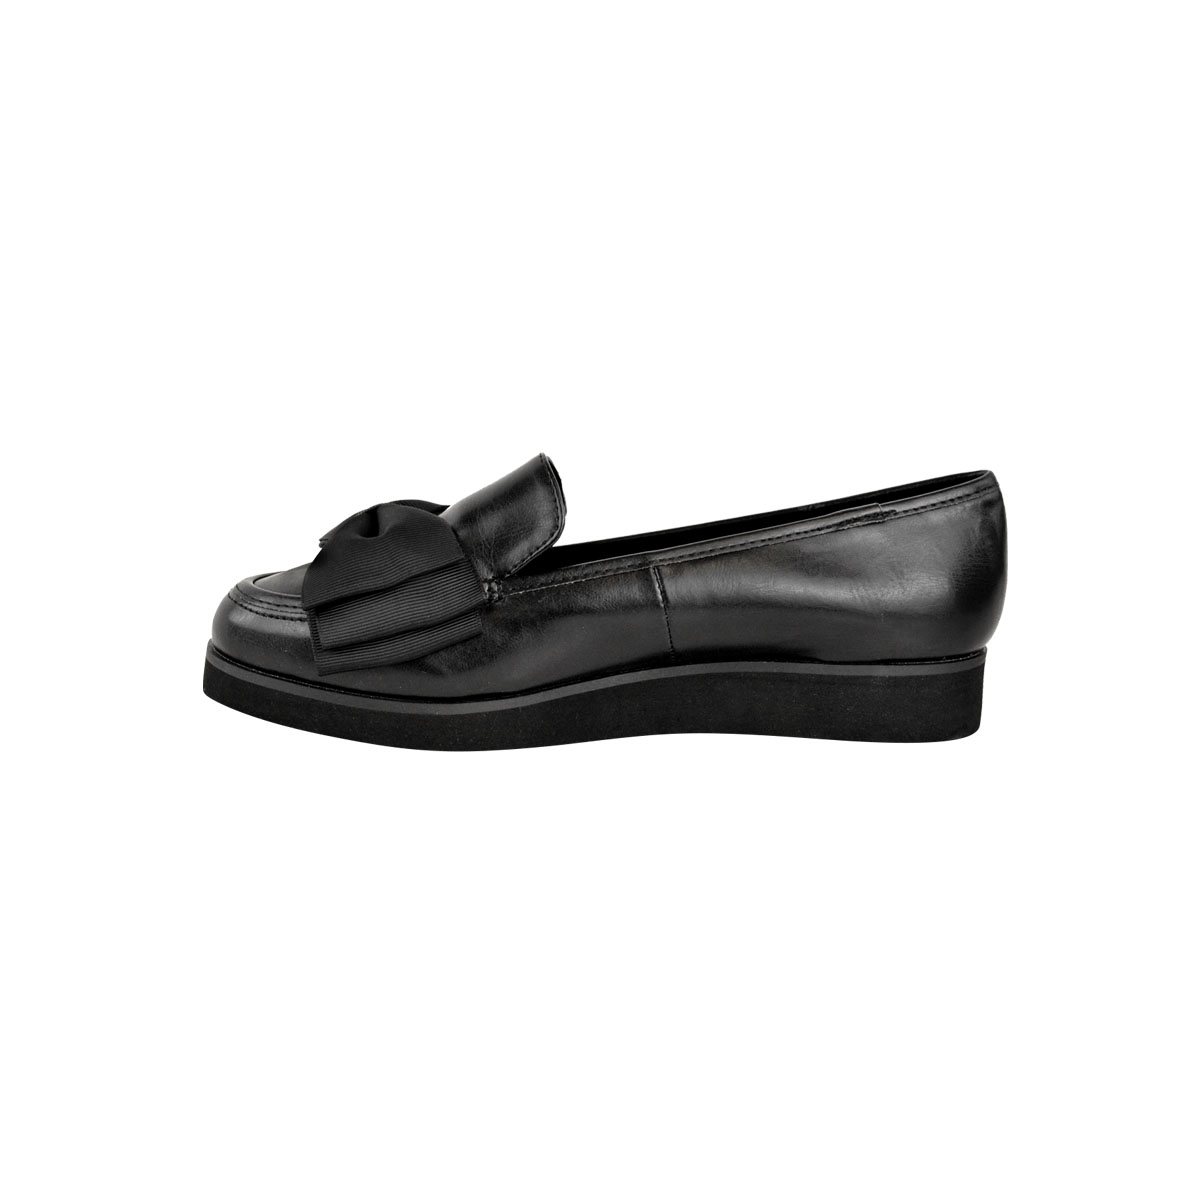 WOMENS-LADIES-GIRLS-NEW-FLAT-OFFICE-SCHOOL-SHOES-SMART-FORMAL-LOAFERS-PUMPS-SIZE thumbnail 4